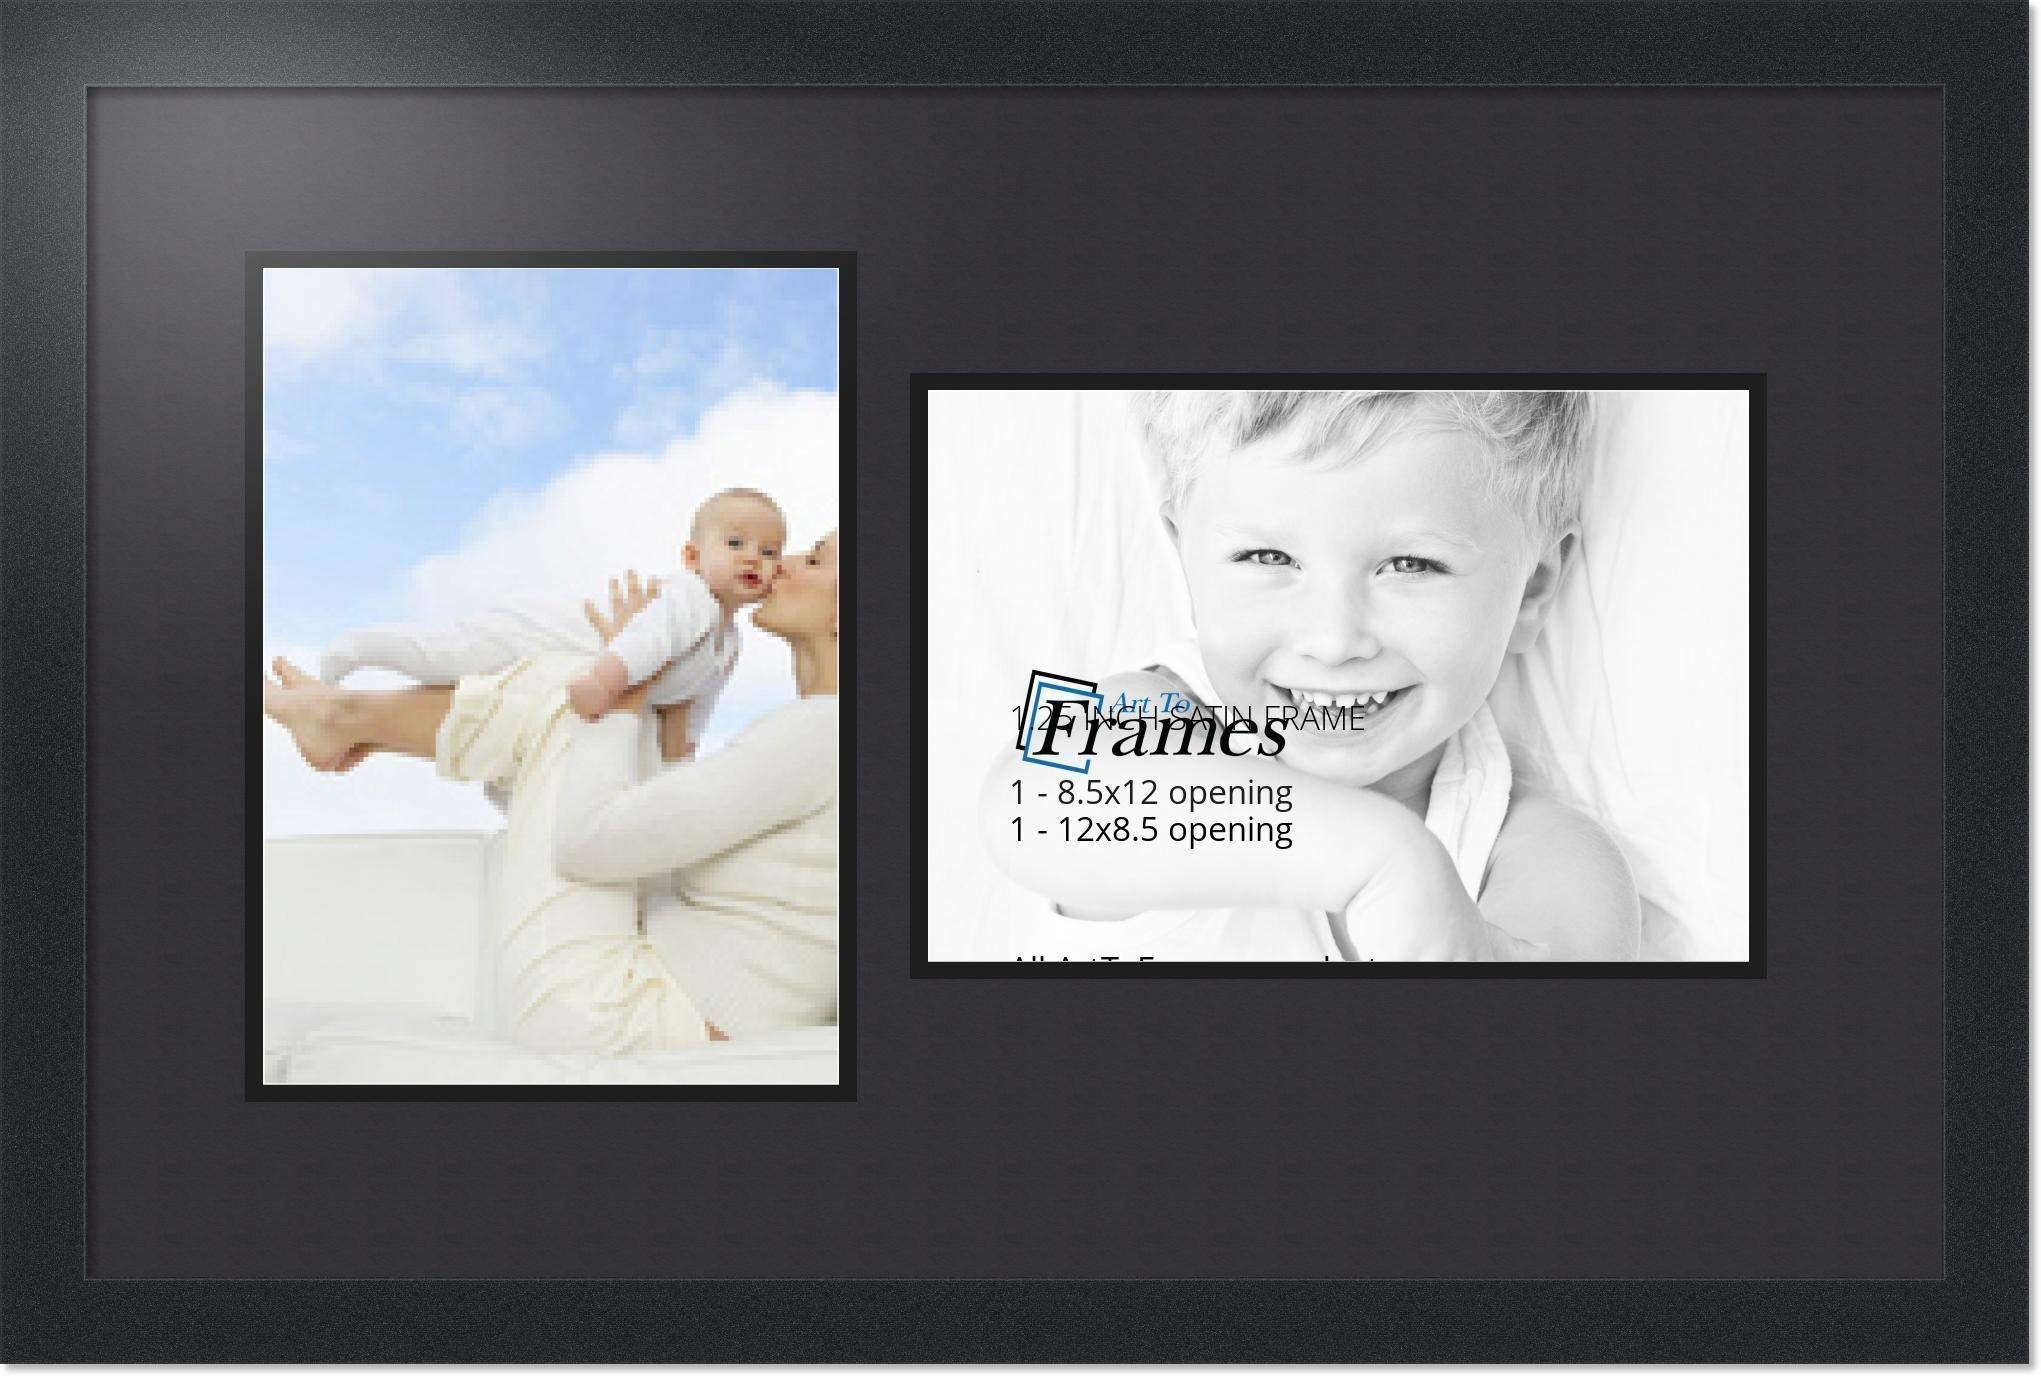 ArtToFrames Collage Photo Frame Double Mat with 2 - 8.5x12 Openings and Satin Black Frame